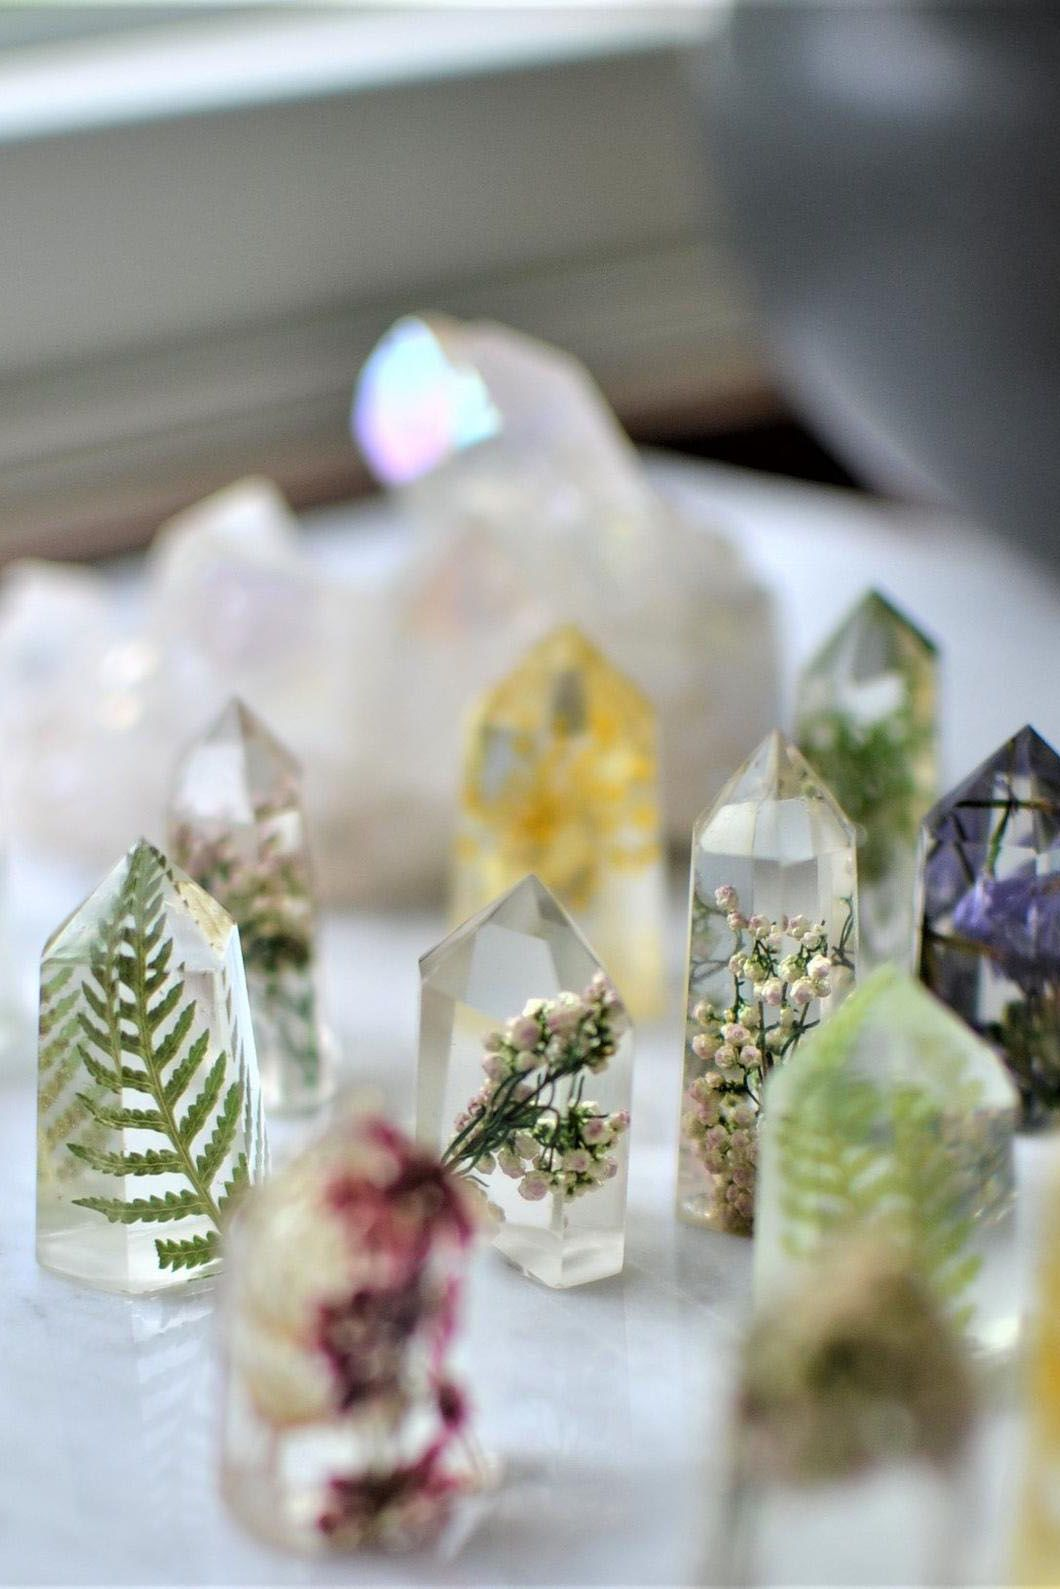 Tiny handmade resin crystal flowers, featuring preserved florals, moss, leaves, and feathers. Each one is less than two inches tall. Add to your desk for a piece of the outdoors inside.